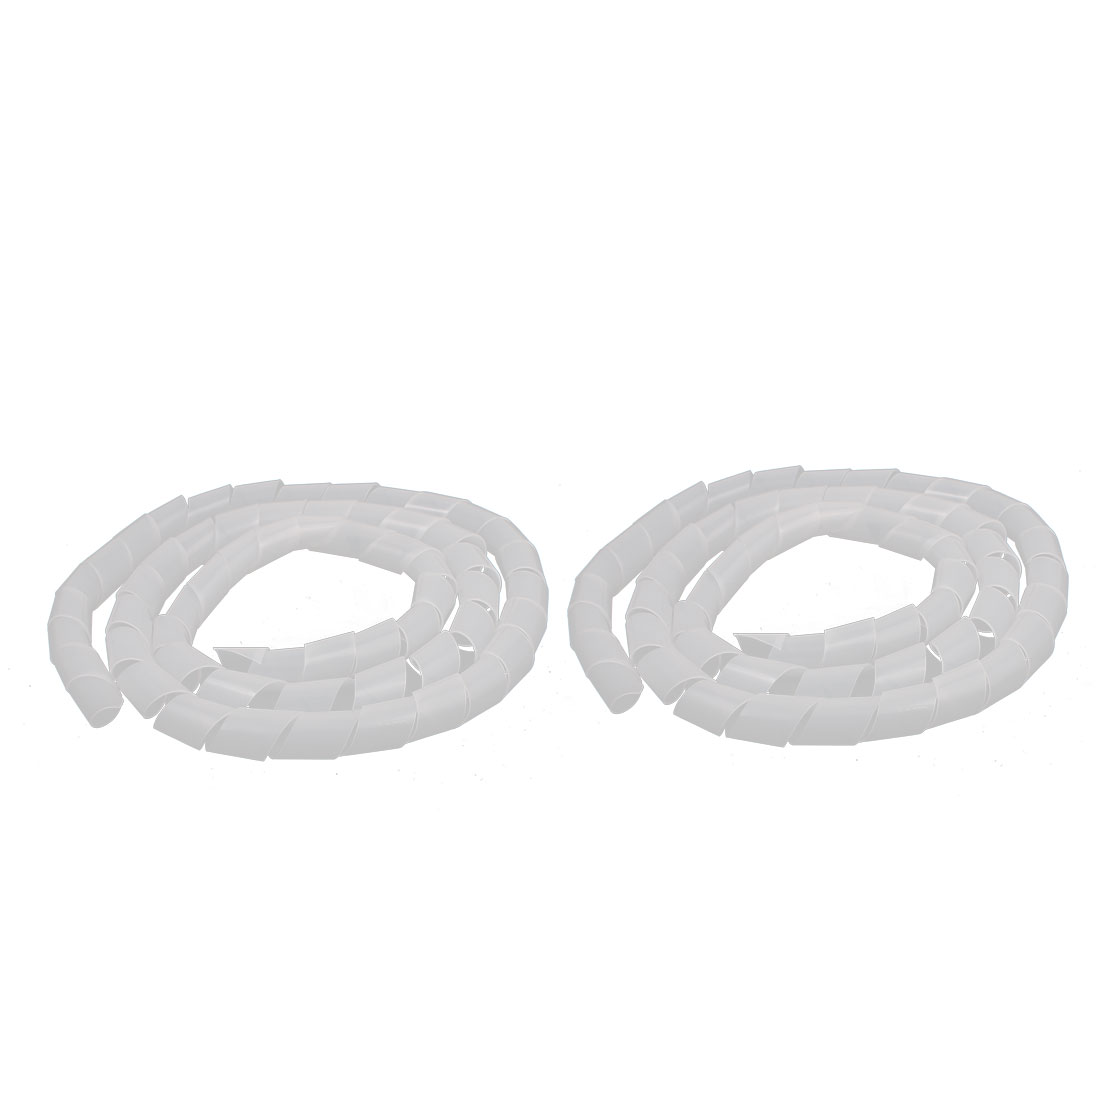 2Pcs 25mm Flexible Spiral Tube Cable Wire Wrap Computer Manage Cord Clear 2M